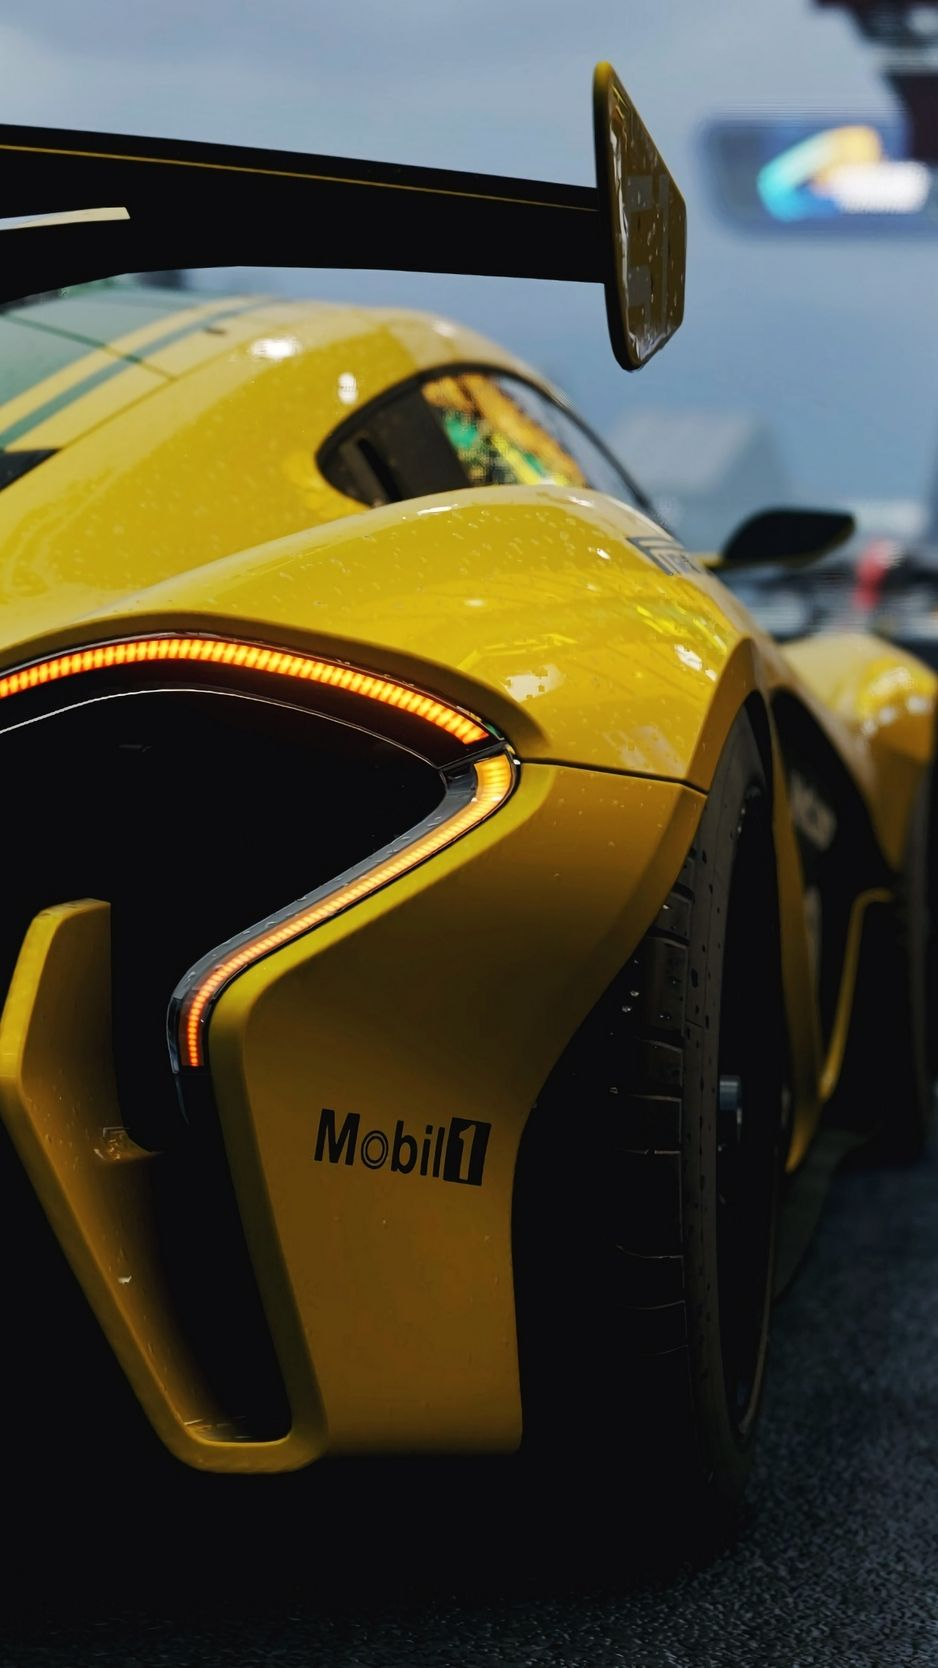 Mclaren P1 Gtr Wallpaper : mclaren, wallpaper, Mclaren, Background, Wallpapers,, Super, Cars,, Futuristic